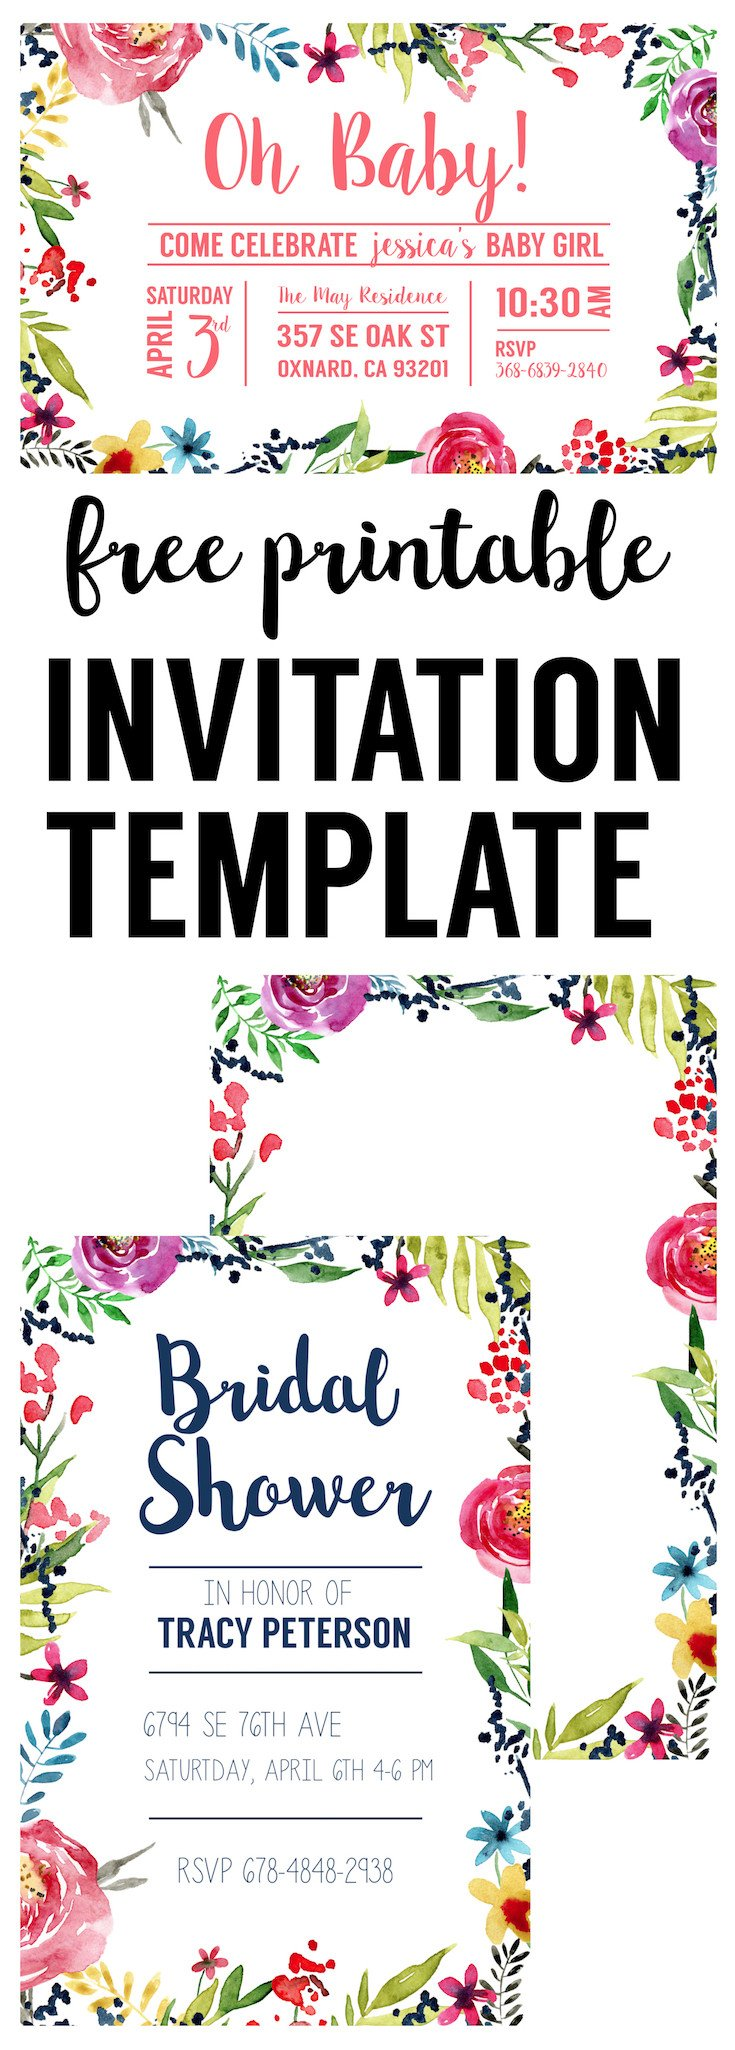 Free Shower Invitation Template Floral Borders Invitations Free Printable Invitation